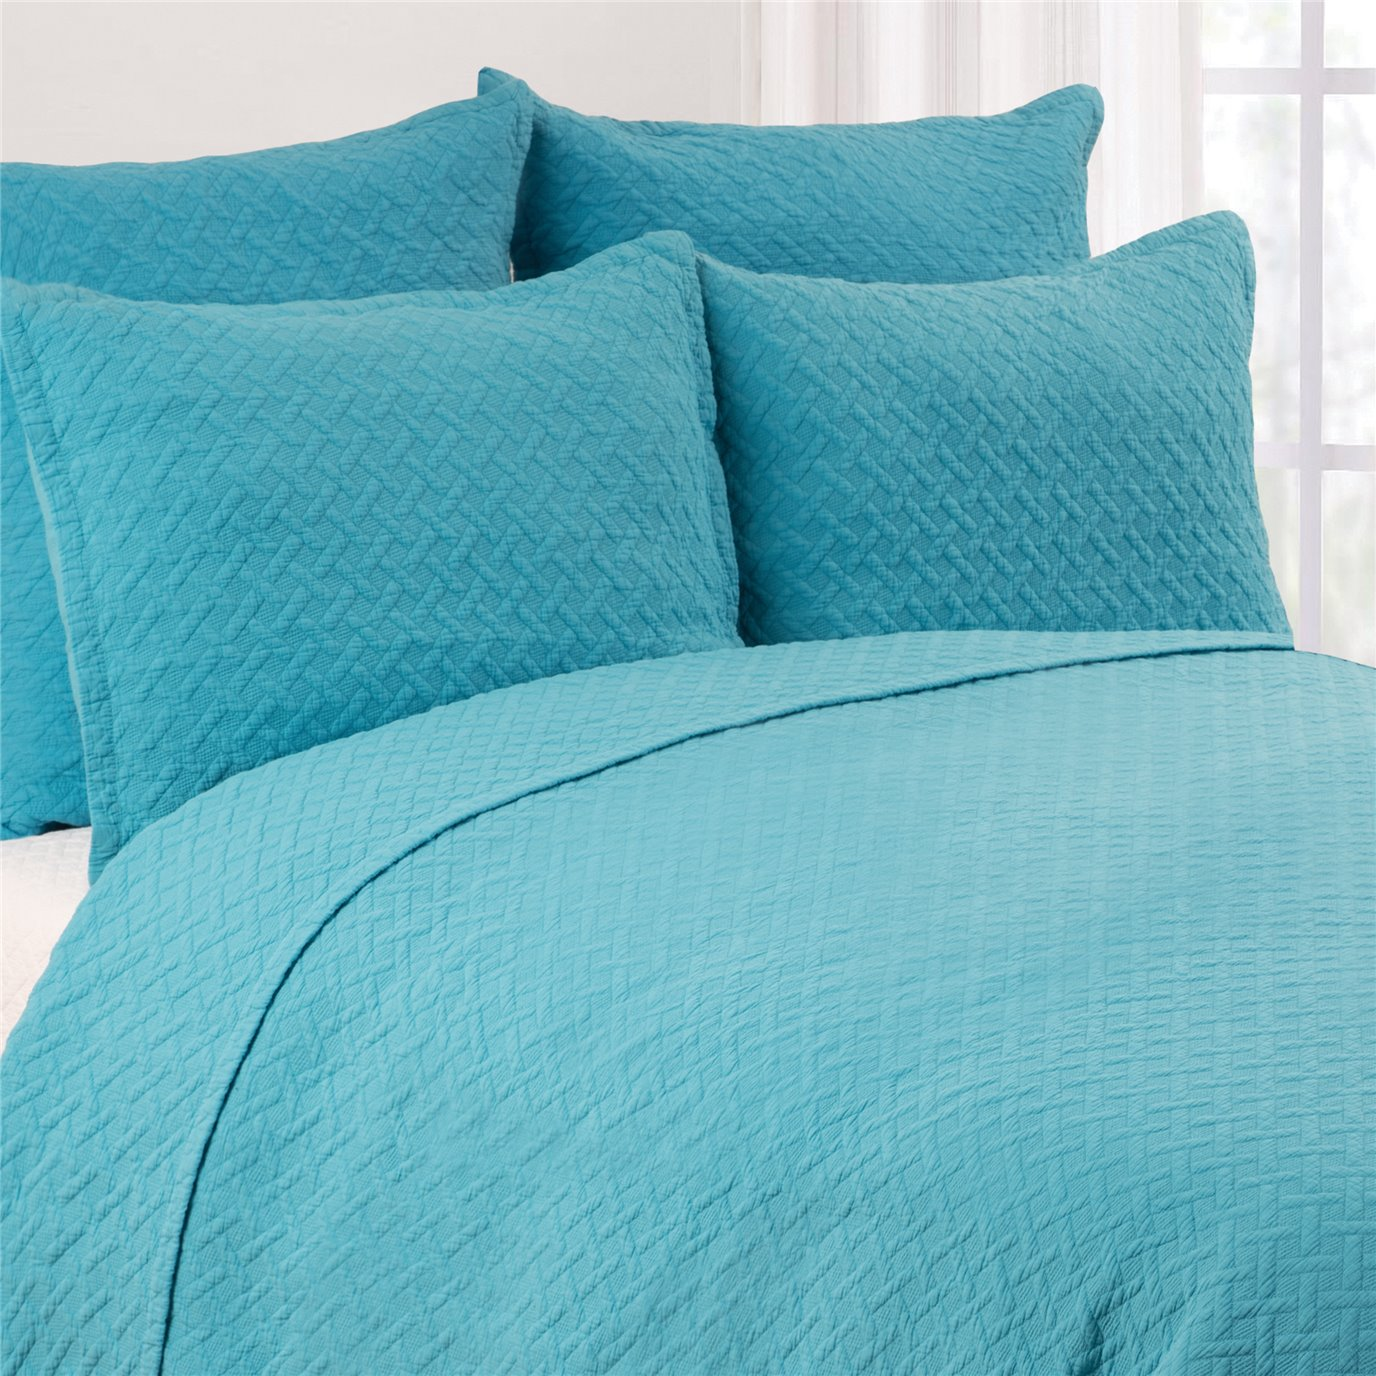 Basketweave Azul 3 Piece King Quilt Set